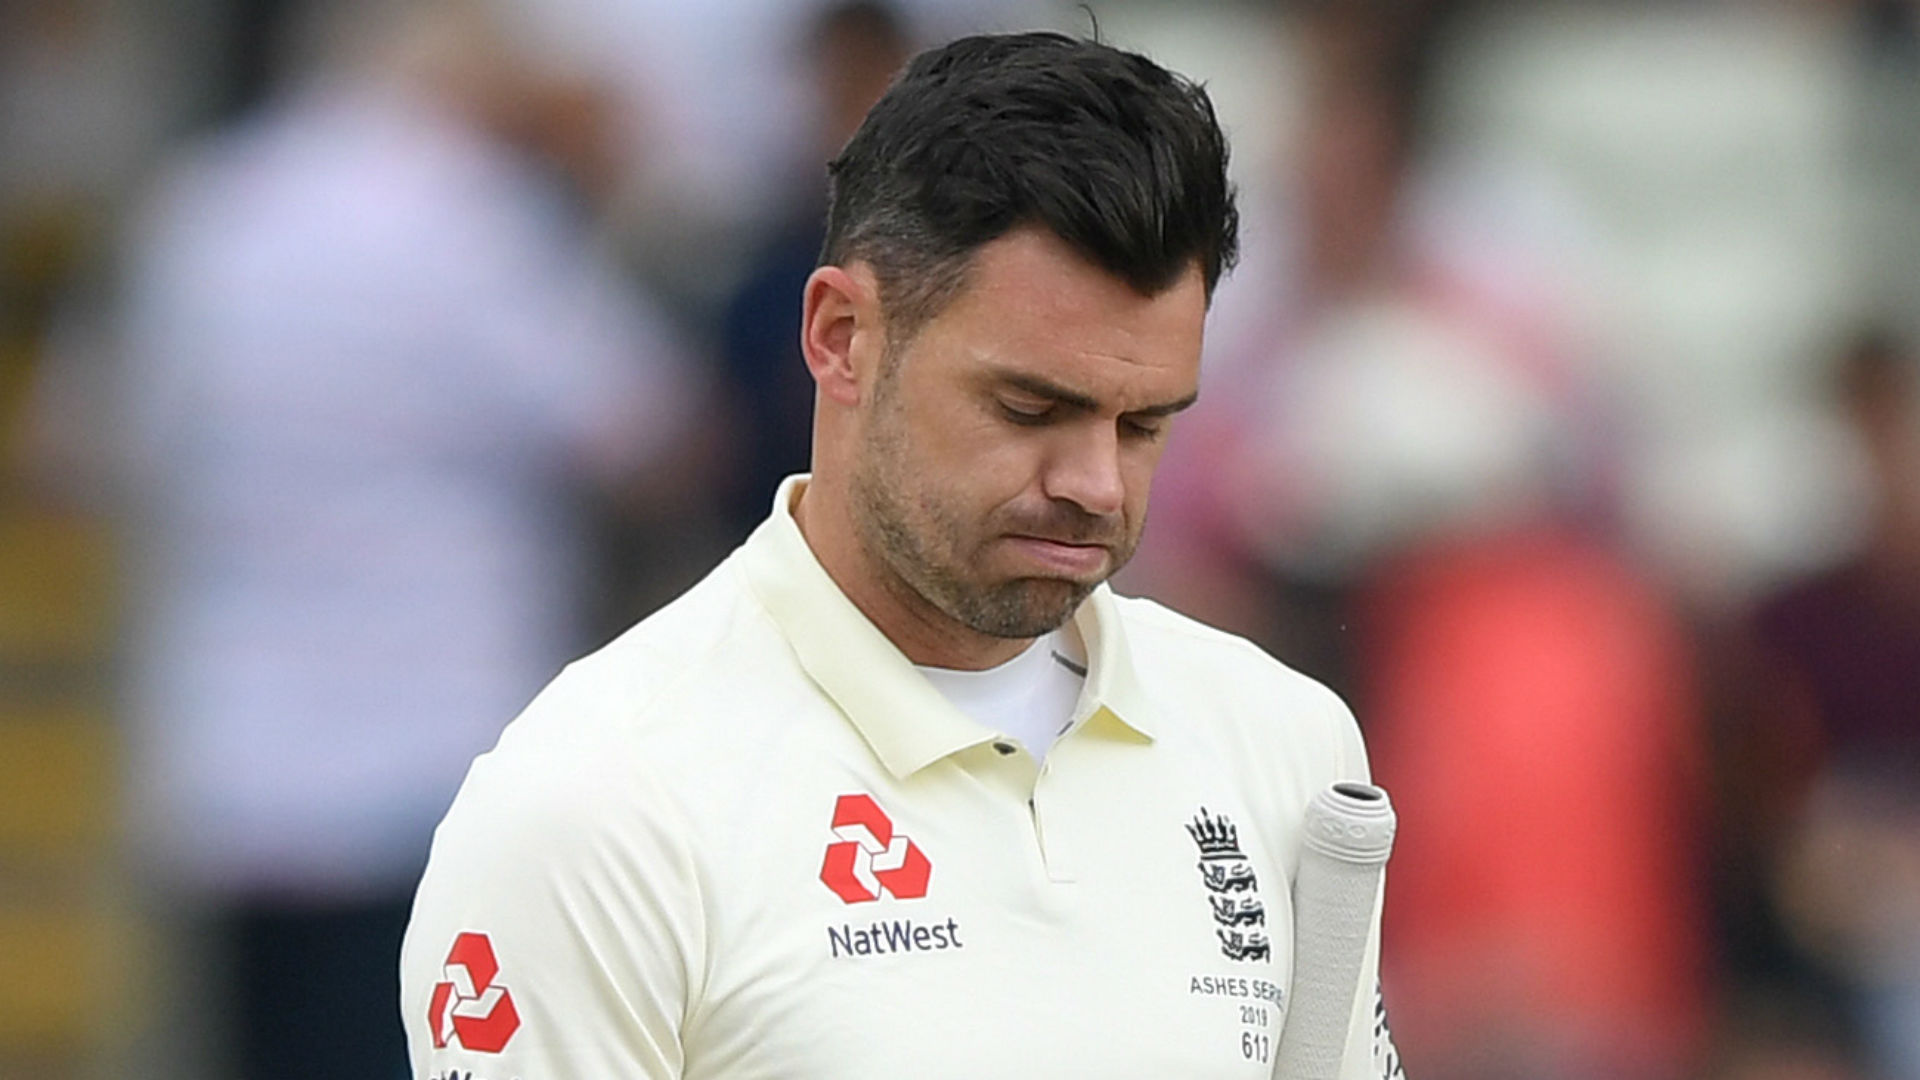 Ashes 2019: Ryan Harris points finger at James Anderson over fitness call